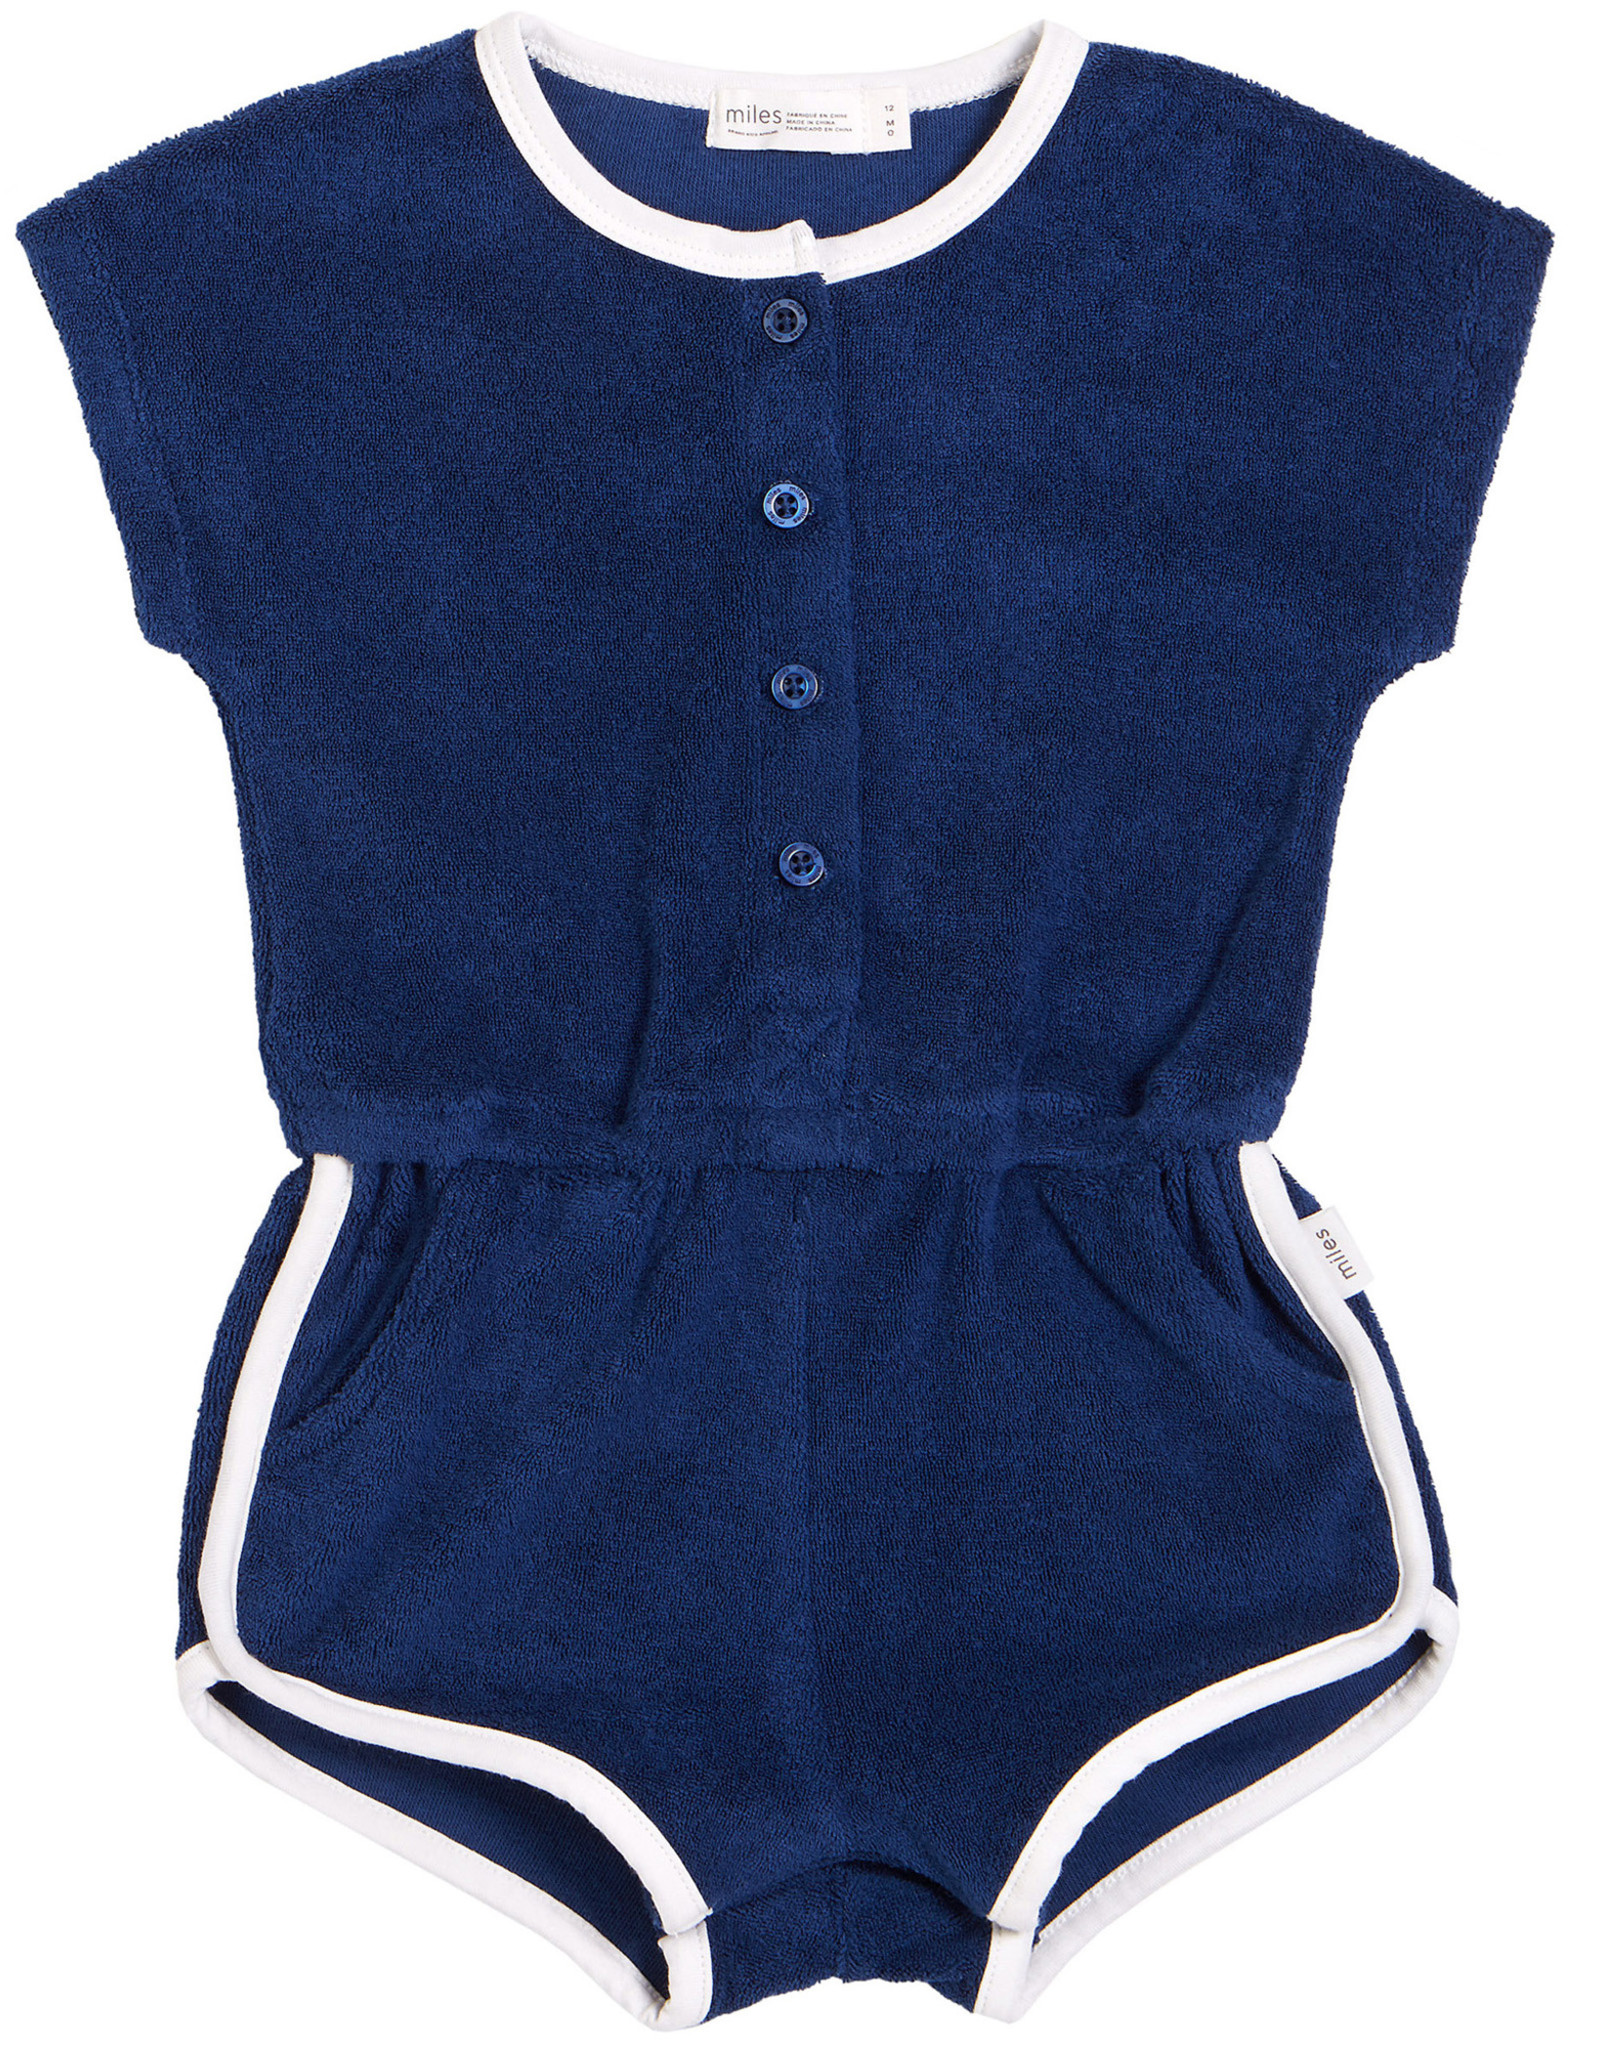 Miles Baby Terry Cloth Romper